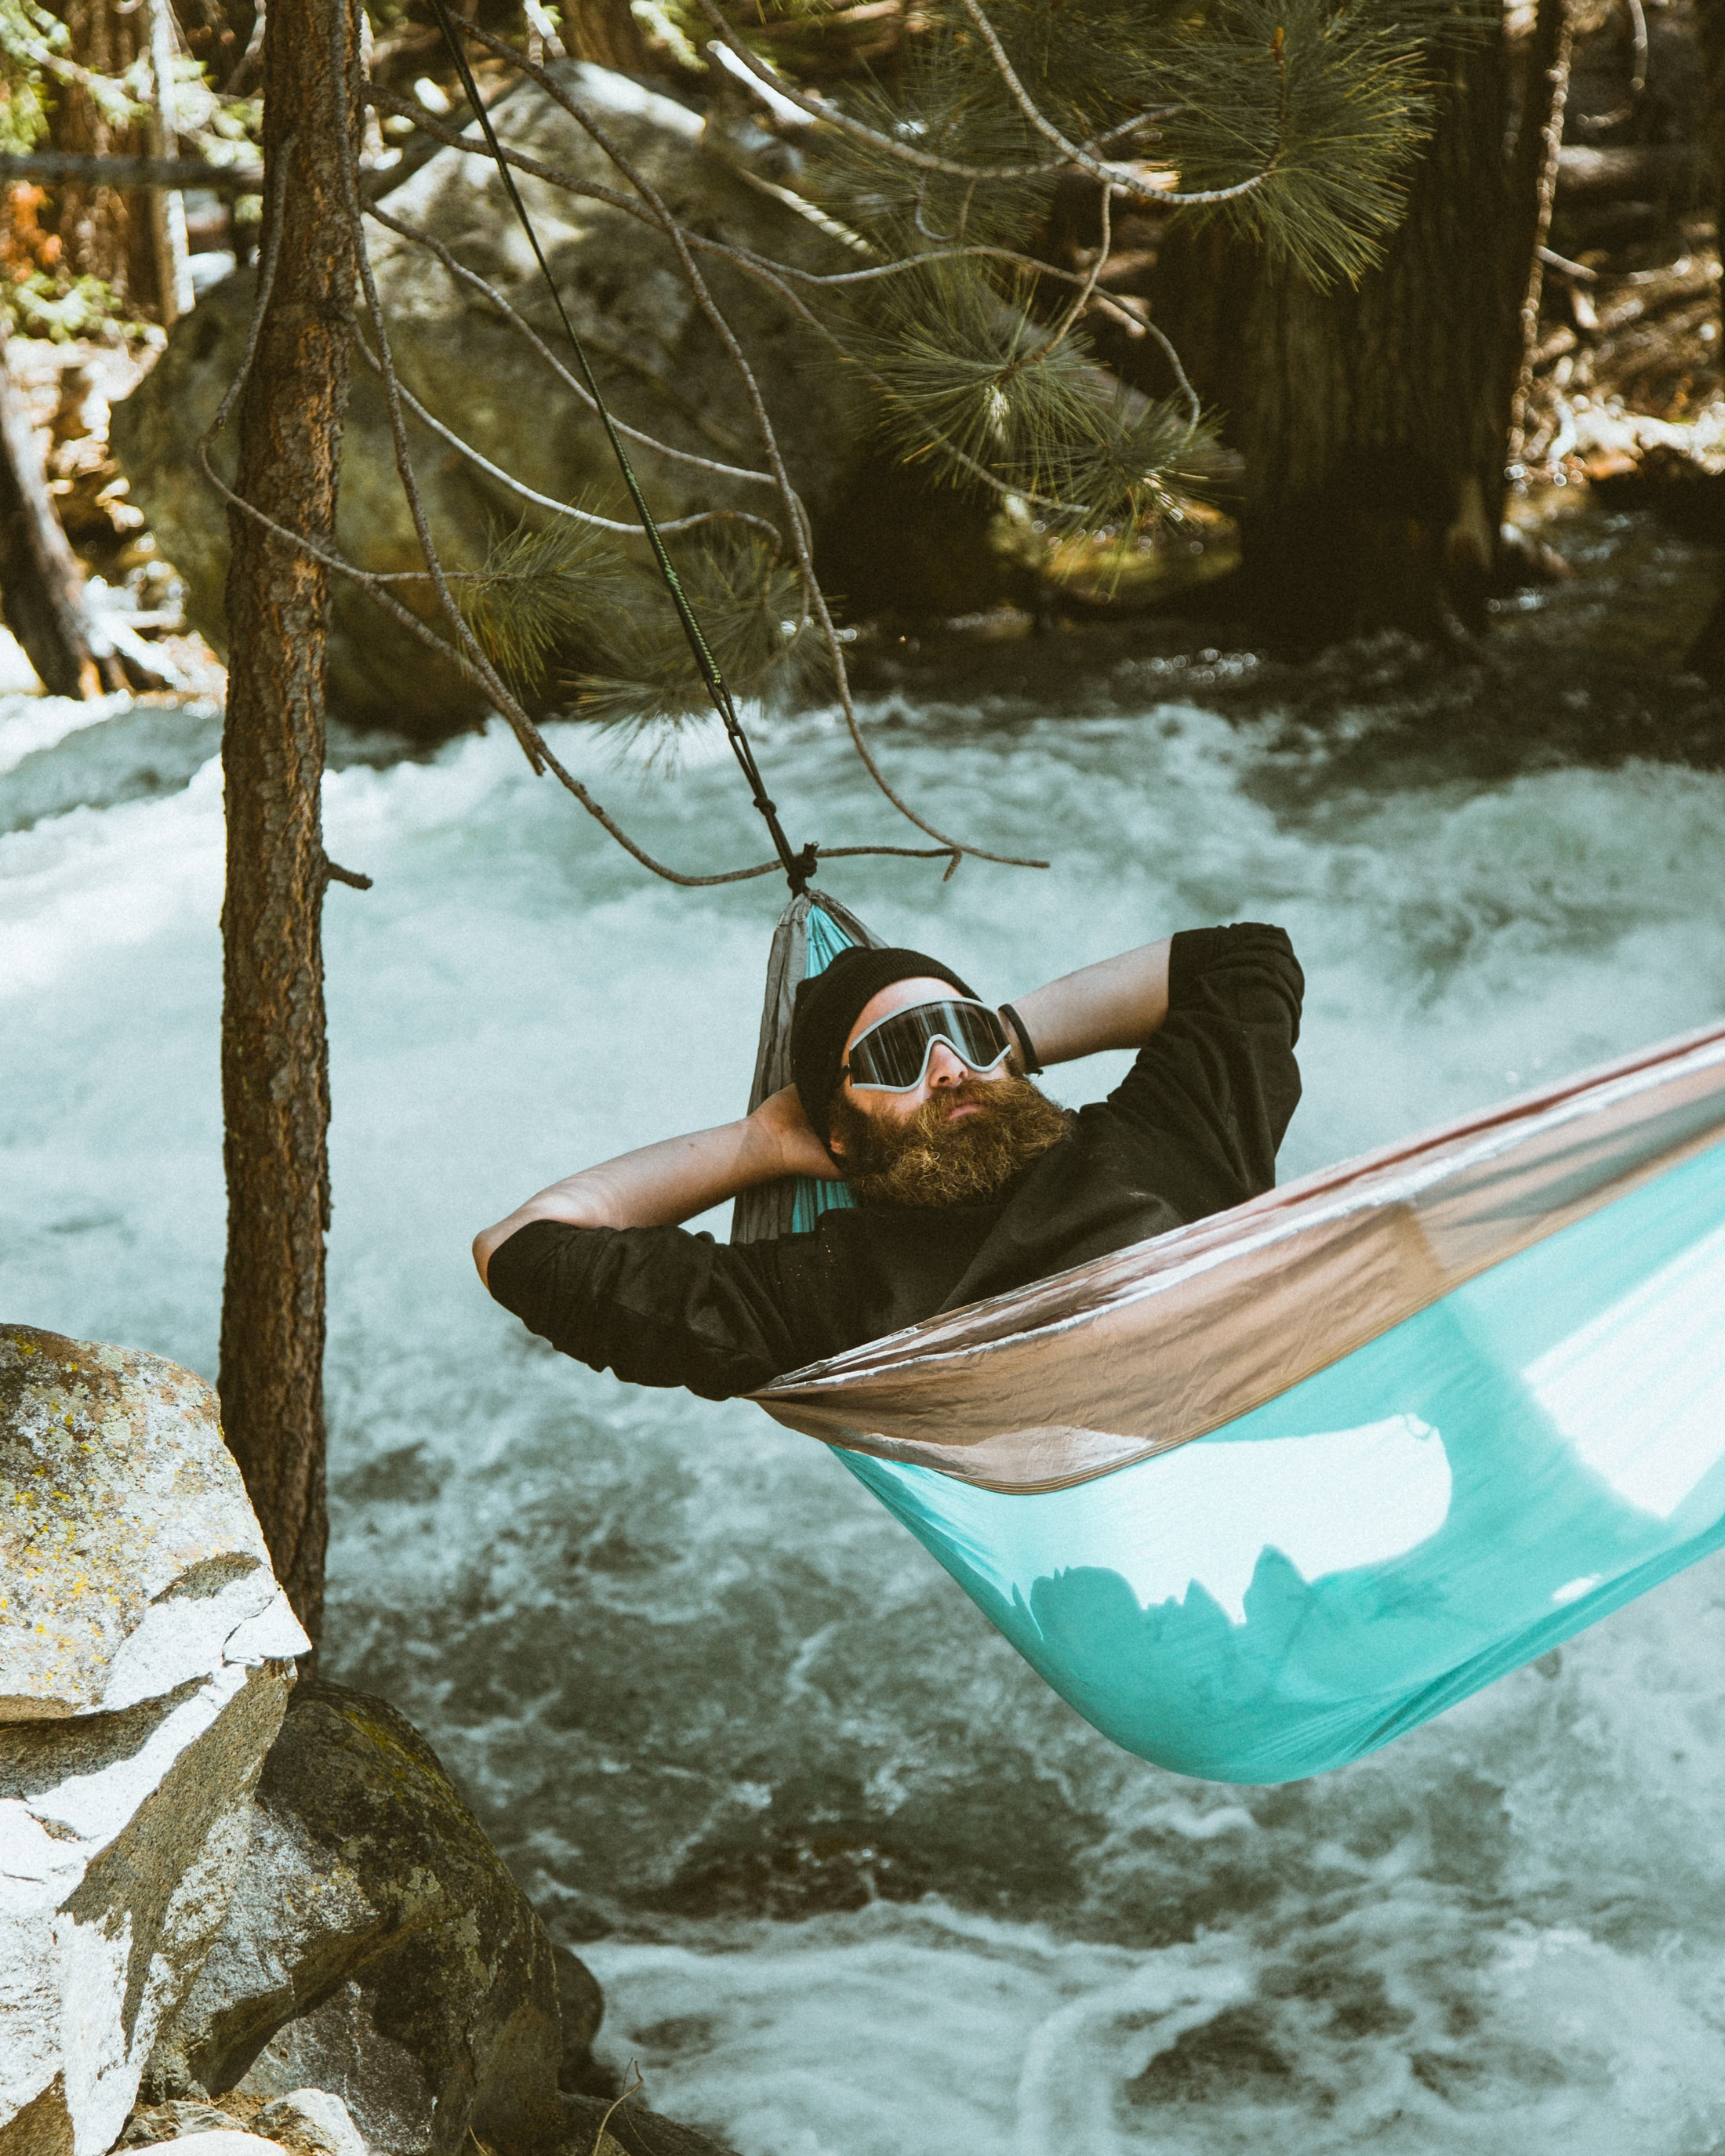 A man with a beard wearing goggles and a hat, laying on a blue hammock over a river in the forest